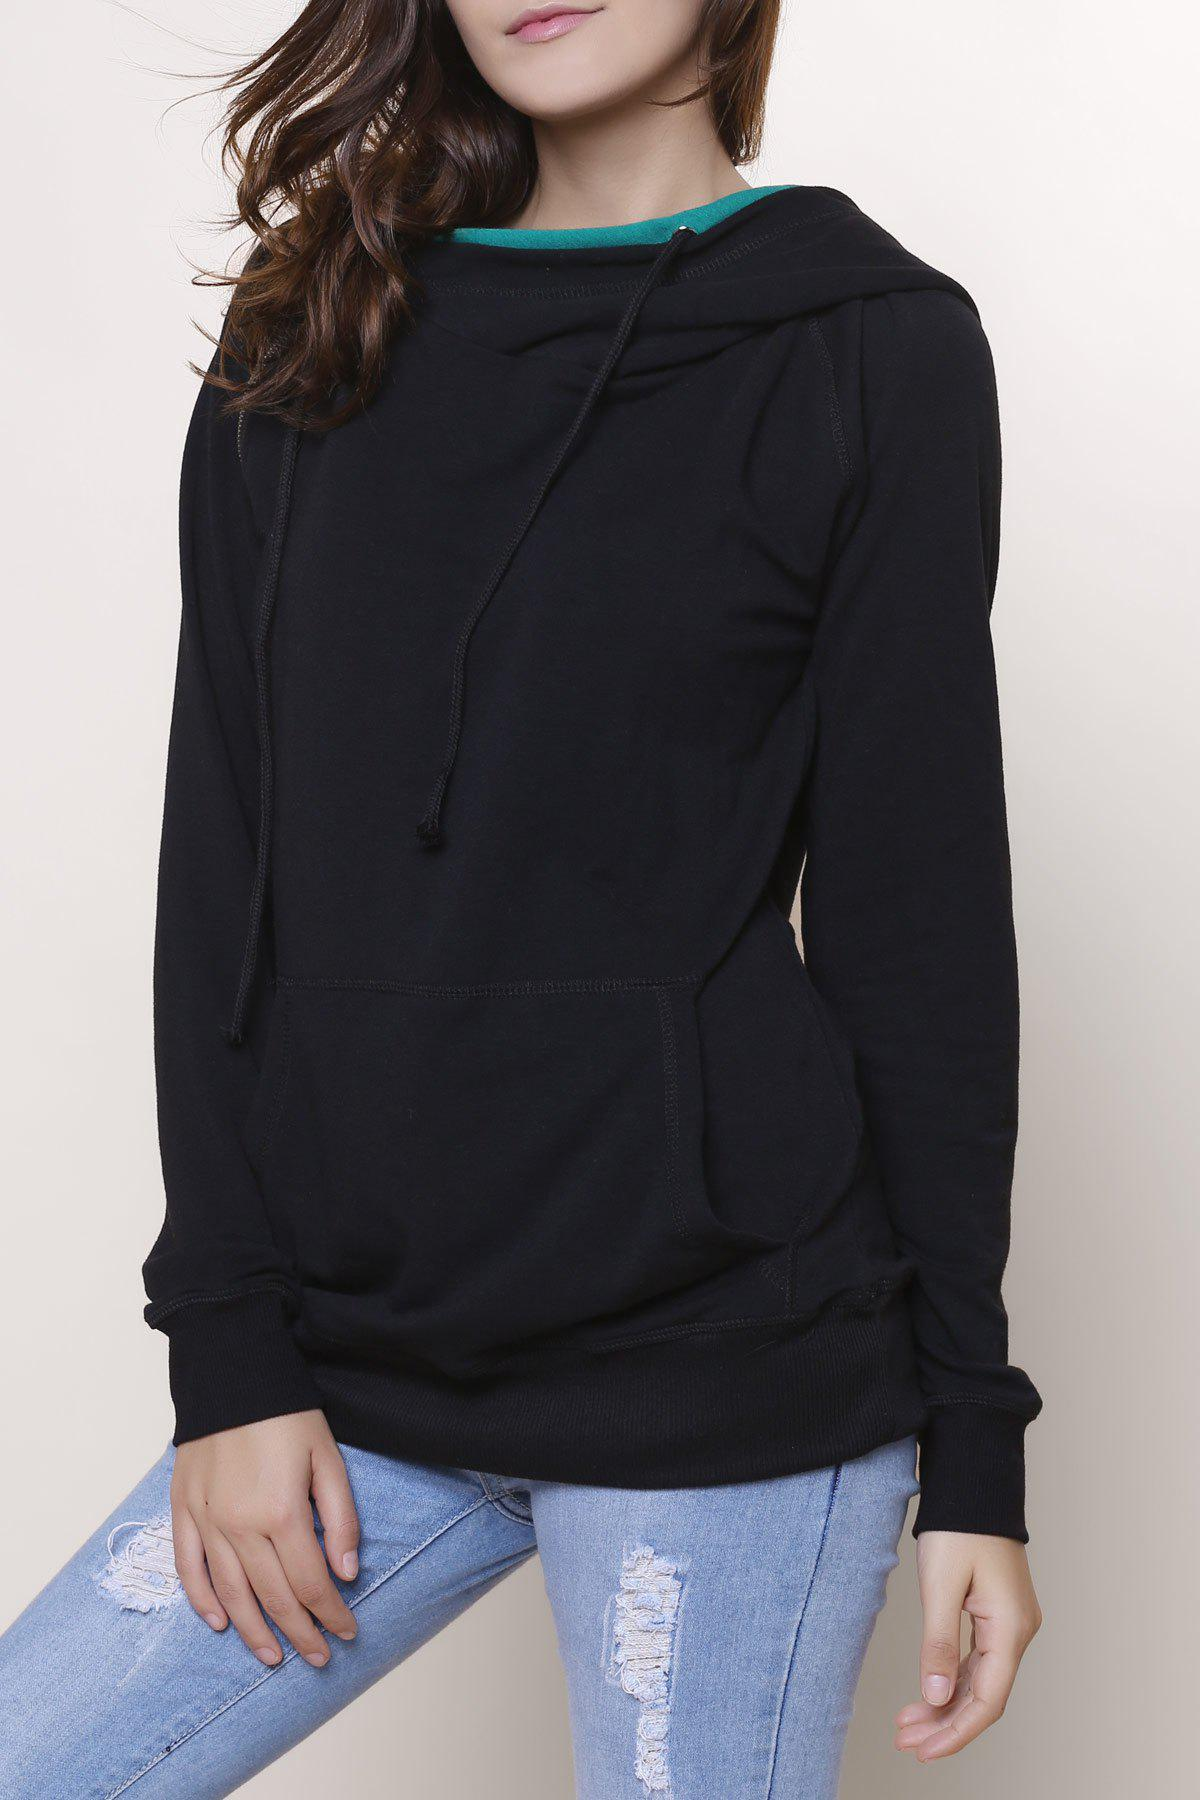 Simple Style Double-Face Hooded Skew Zippered Long Sleeve Pullover Hoodie For Women